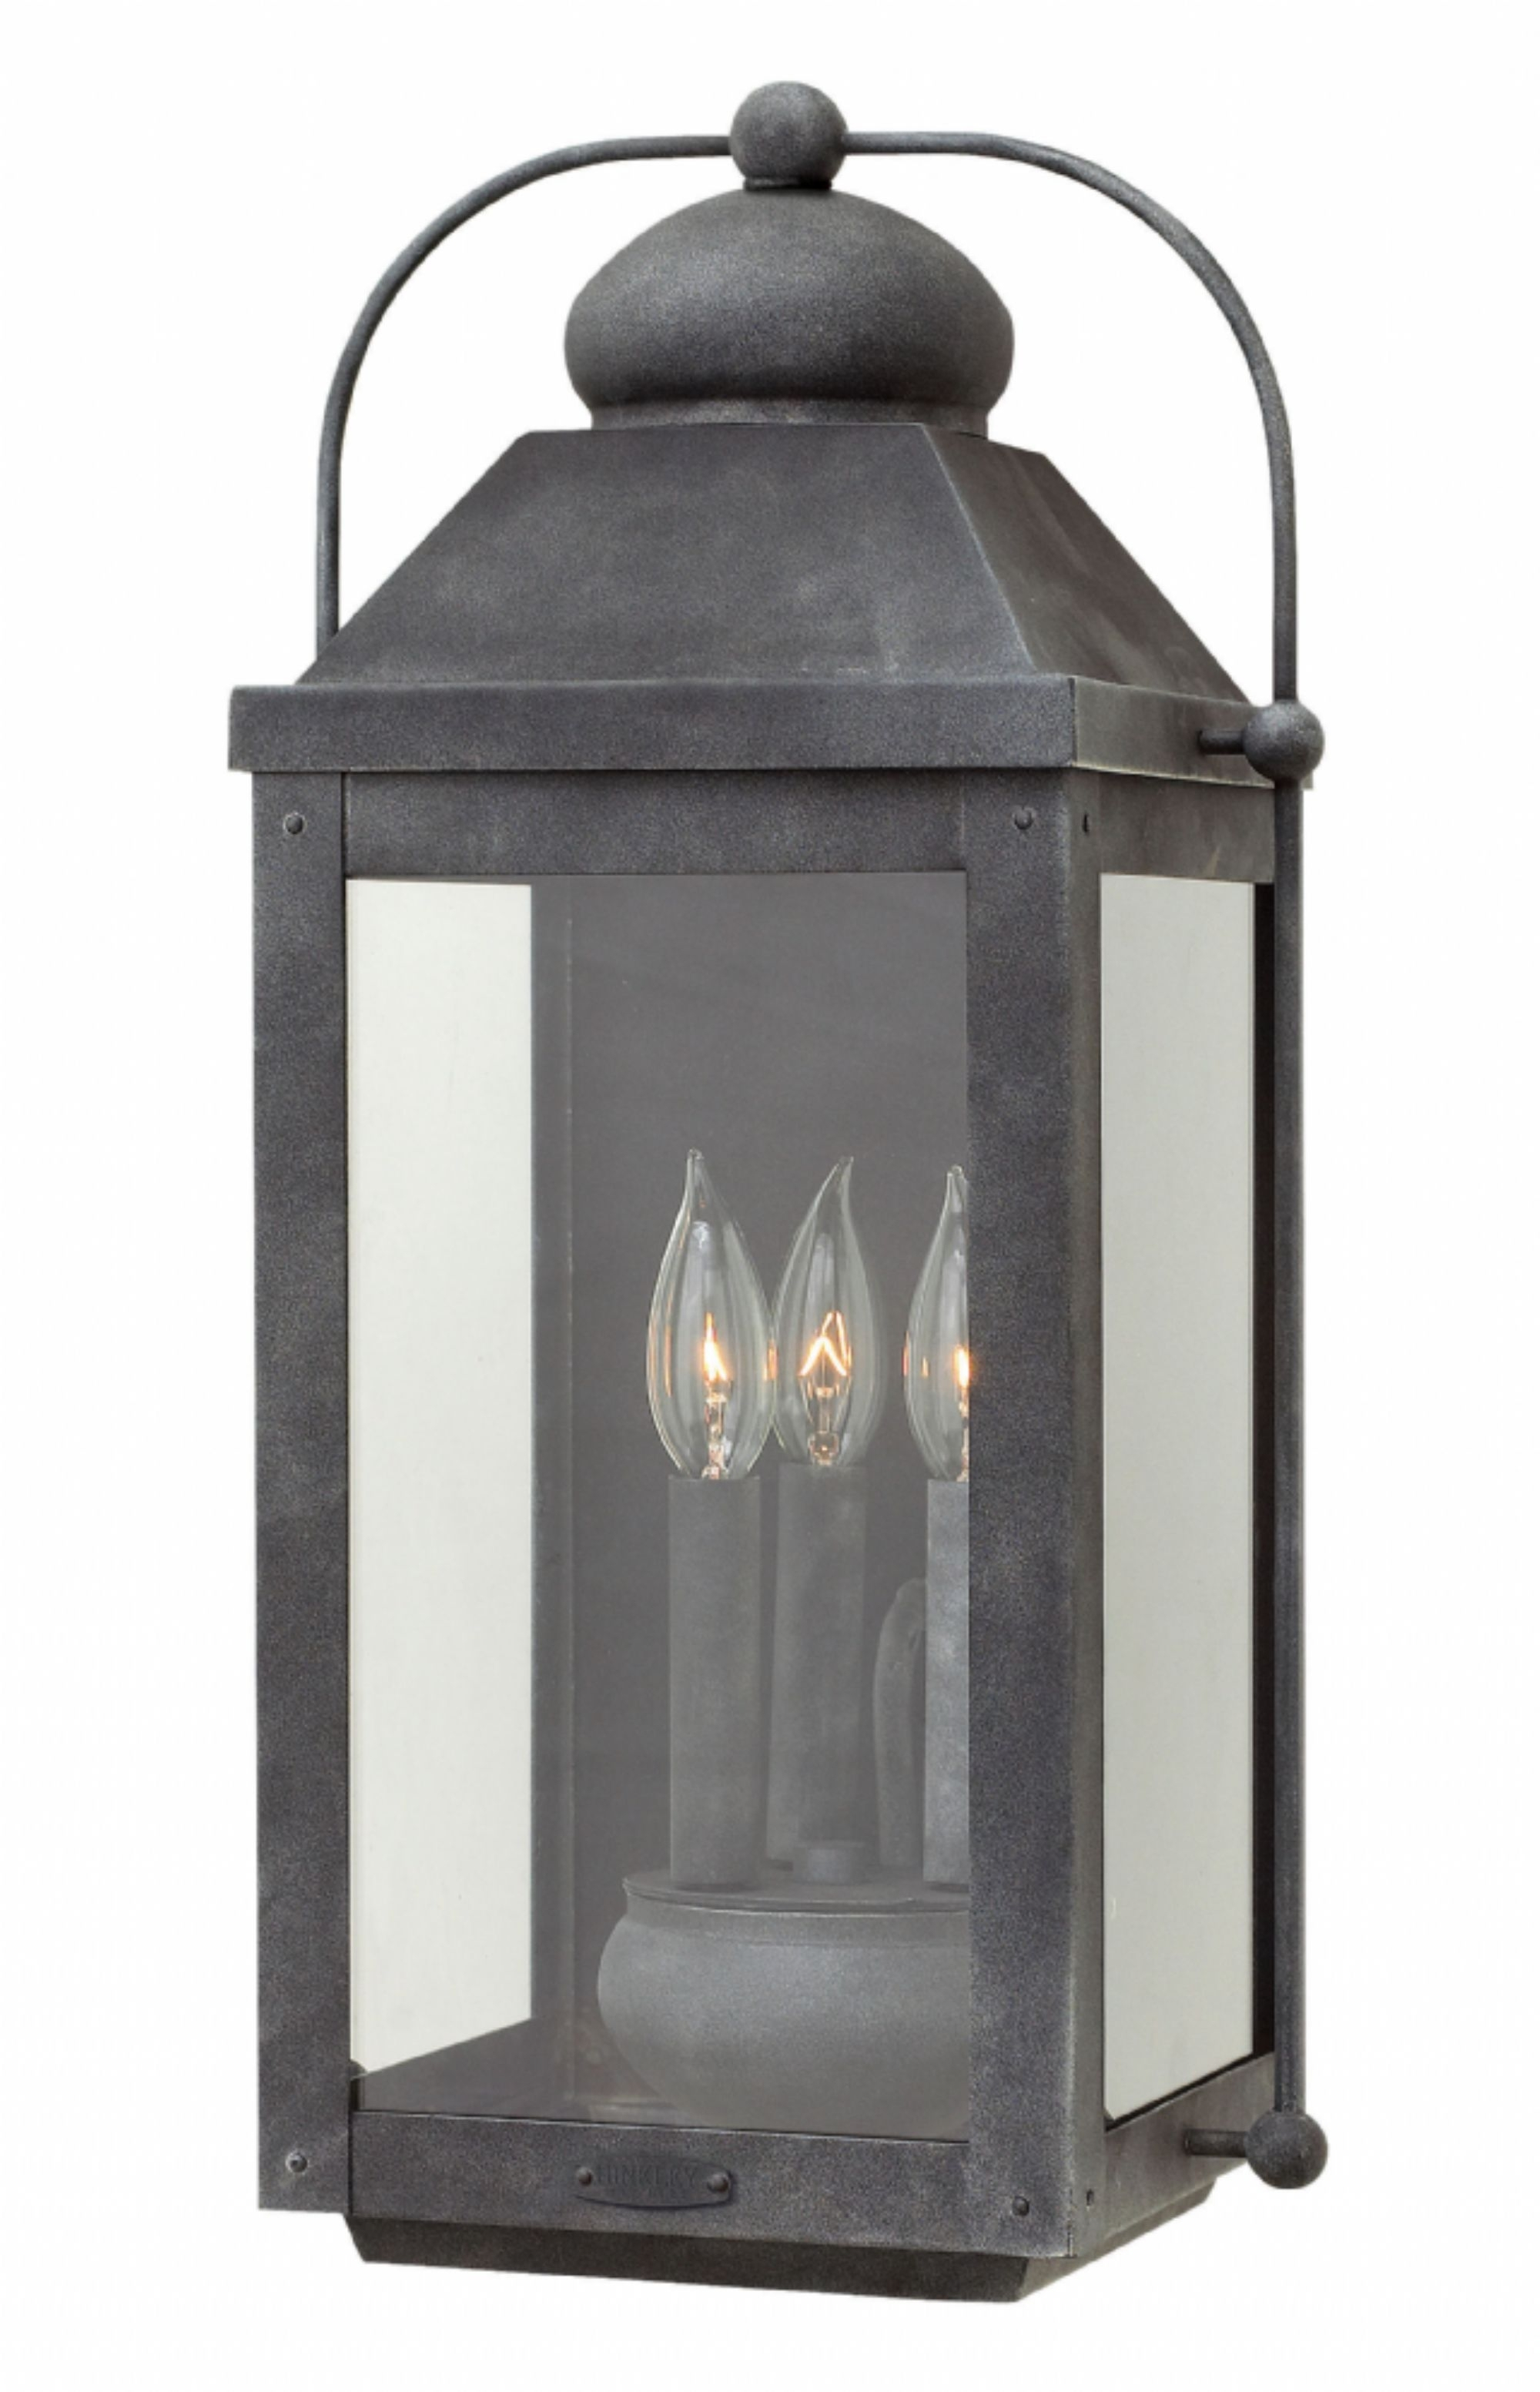 Aged Zinc Anchorage > Exterior Wall Mount for Zinc Outdoor Lanterns (Image 1 of 20)